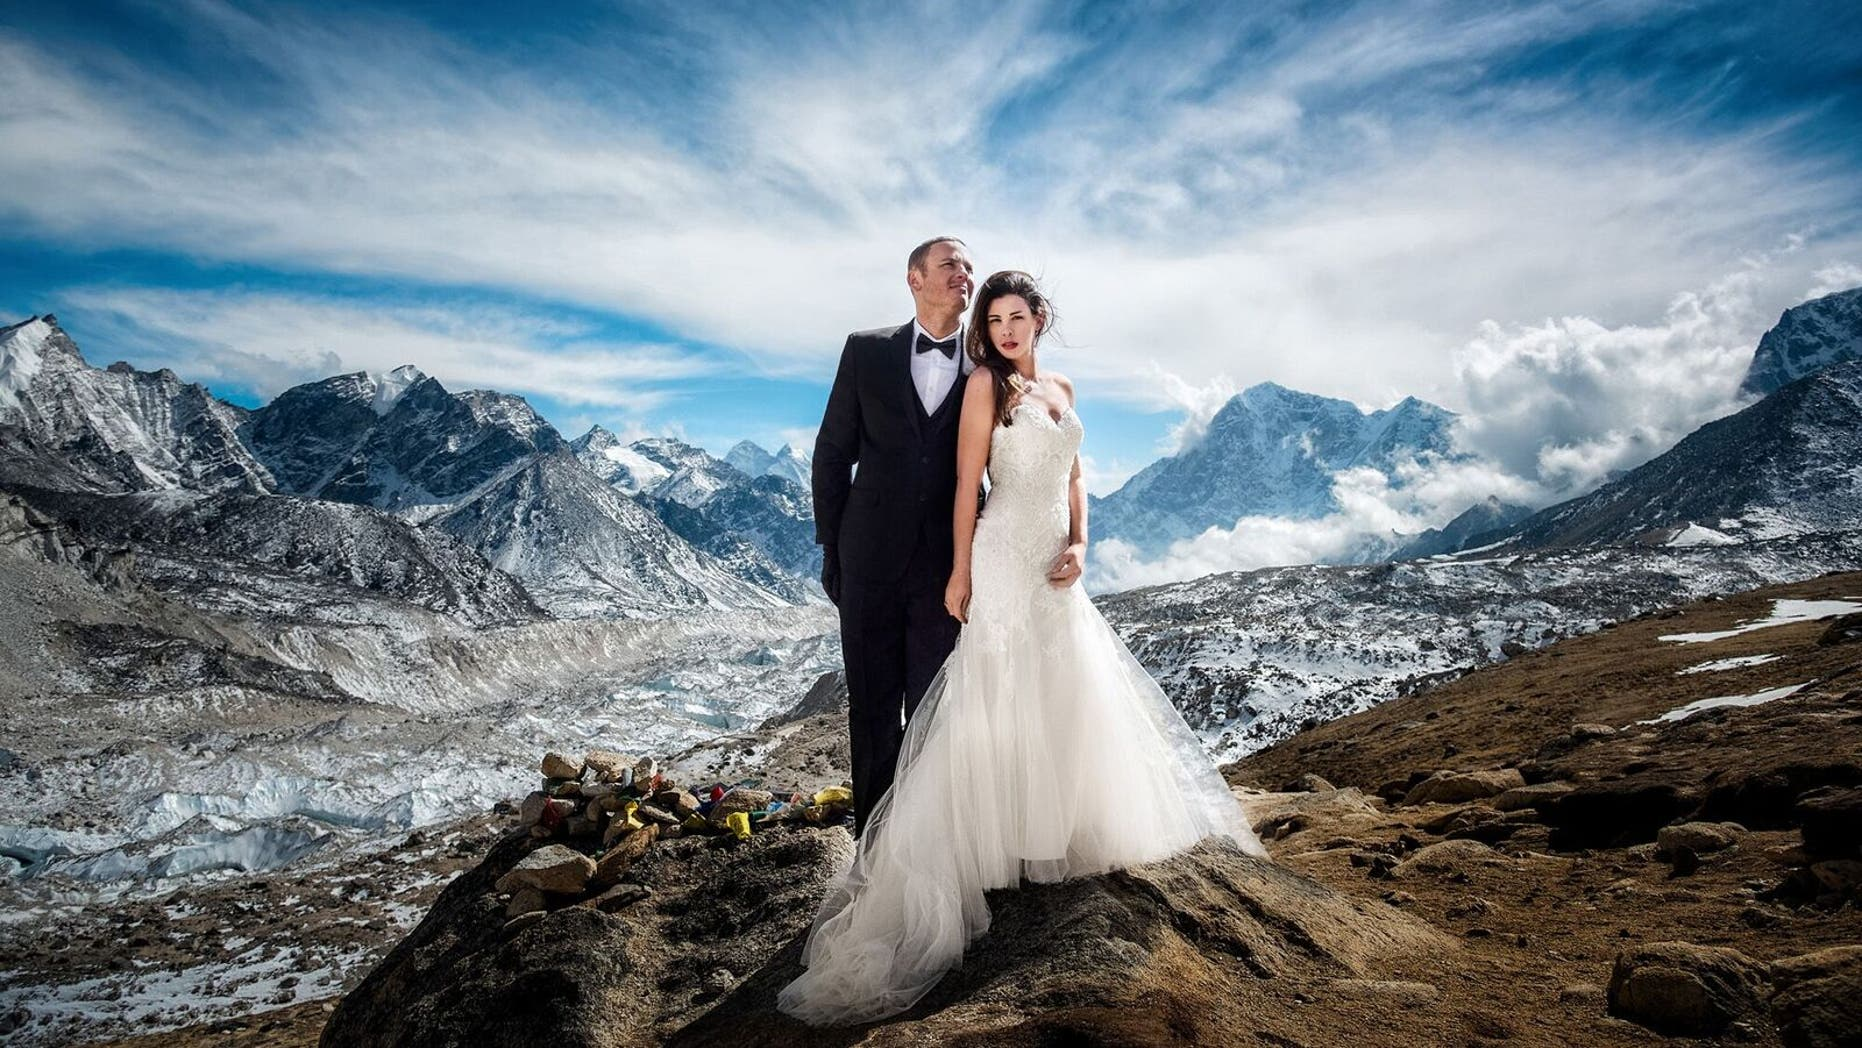 James Sissom and Ashley Schmeider trekked up Mount Everest for their dream wedding on March 16, 2017.